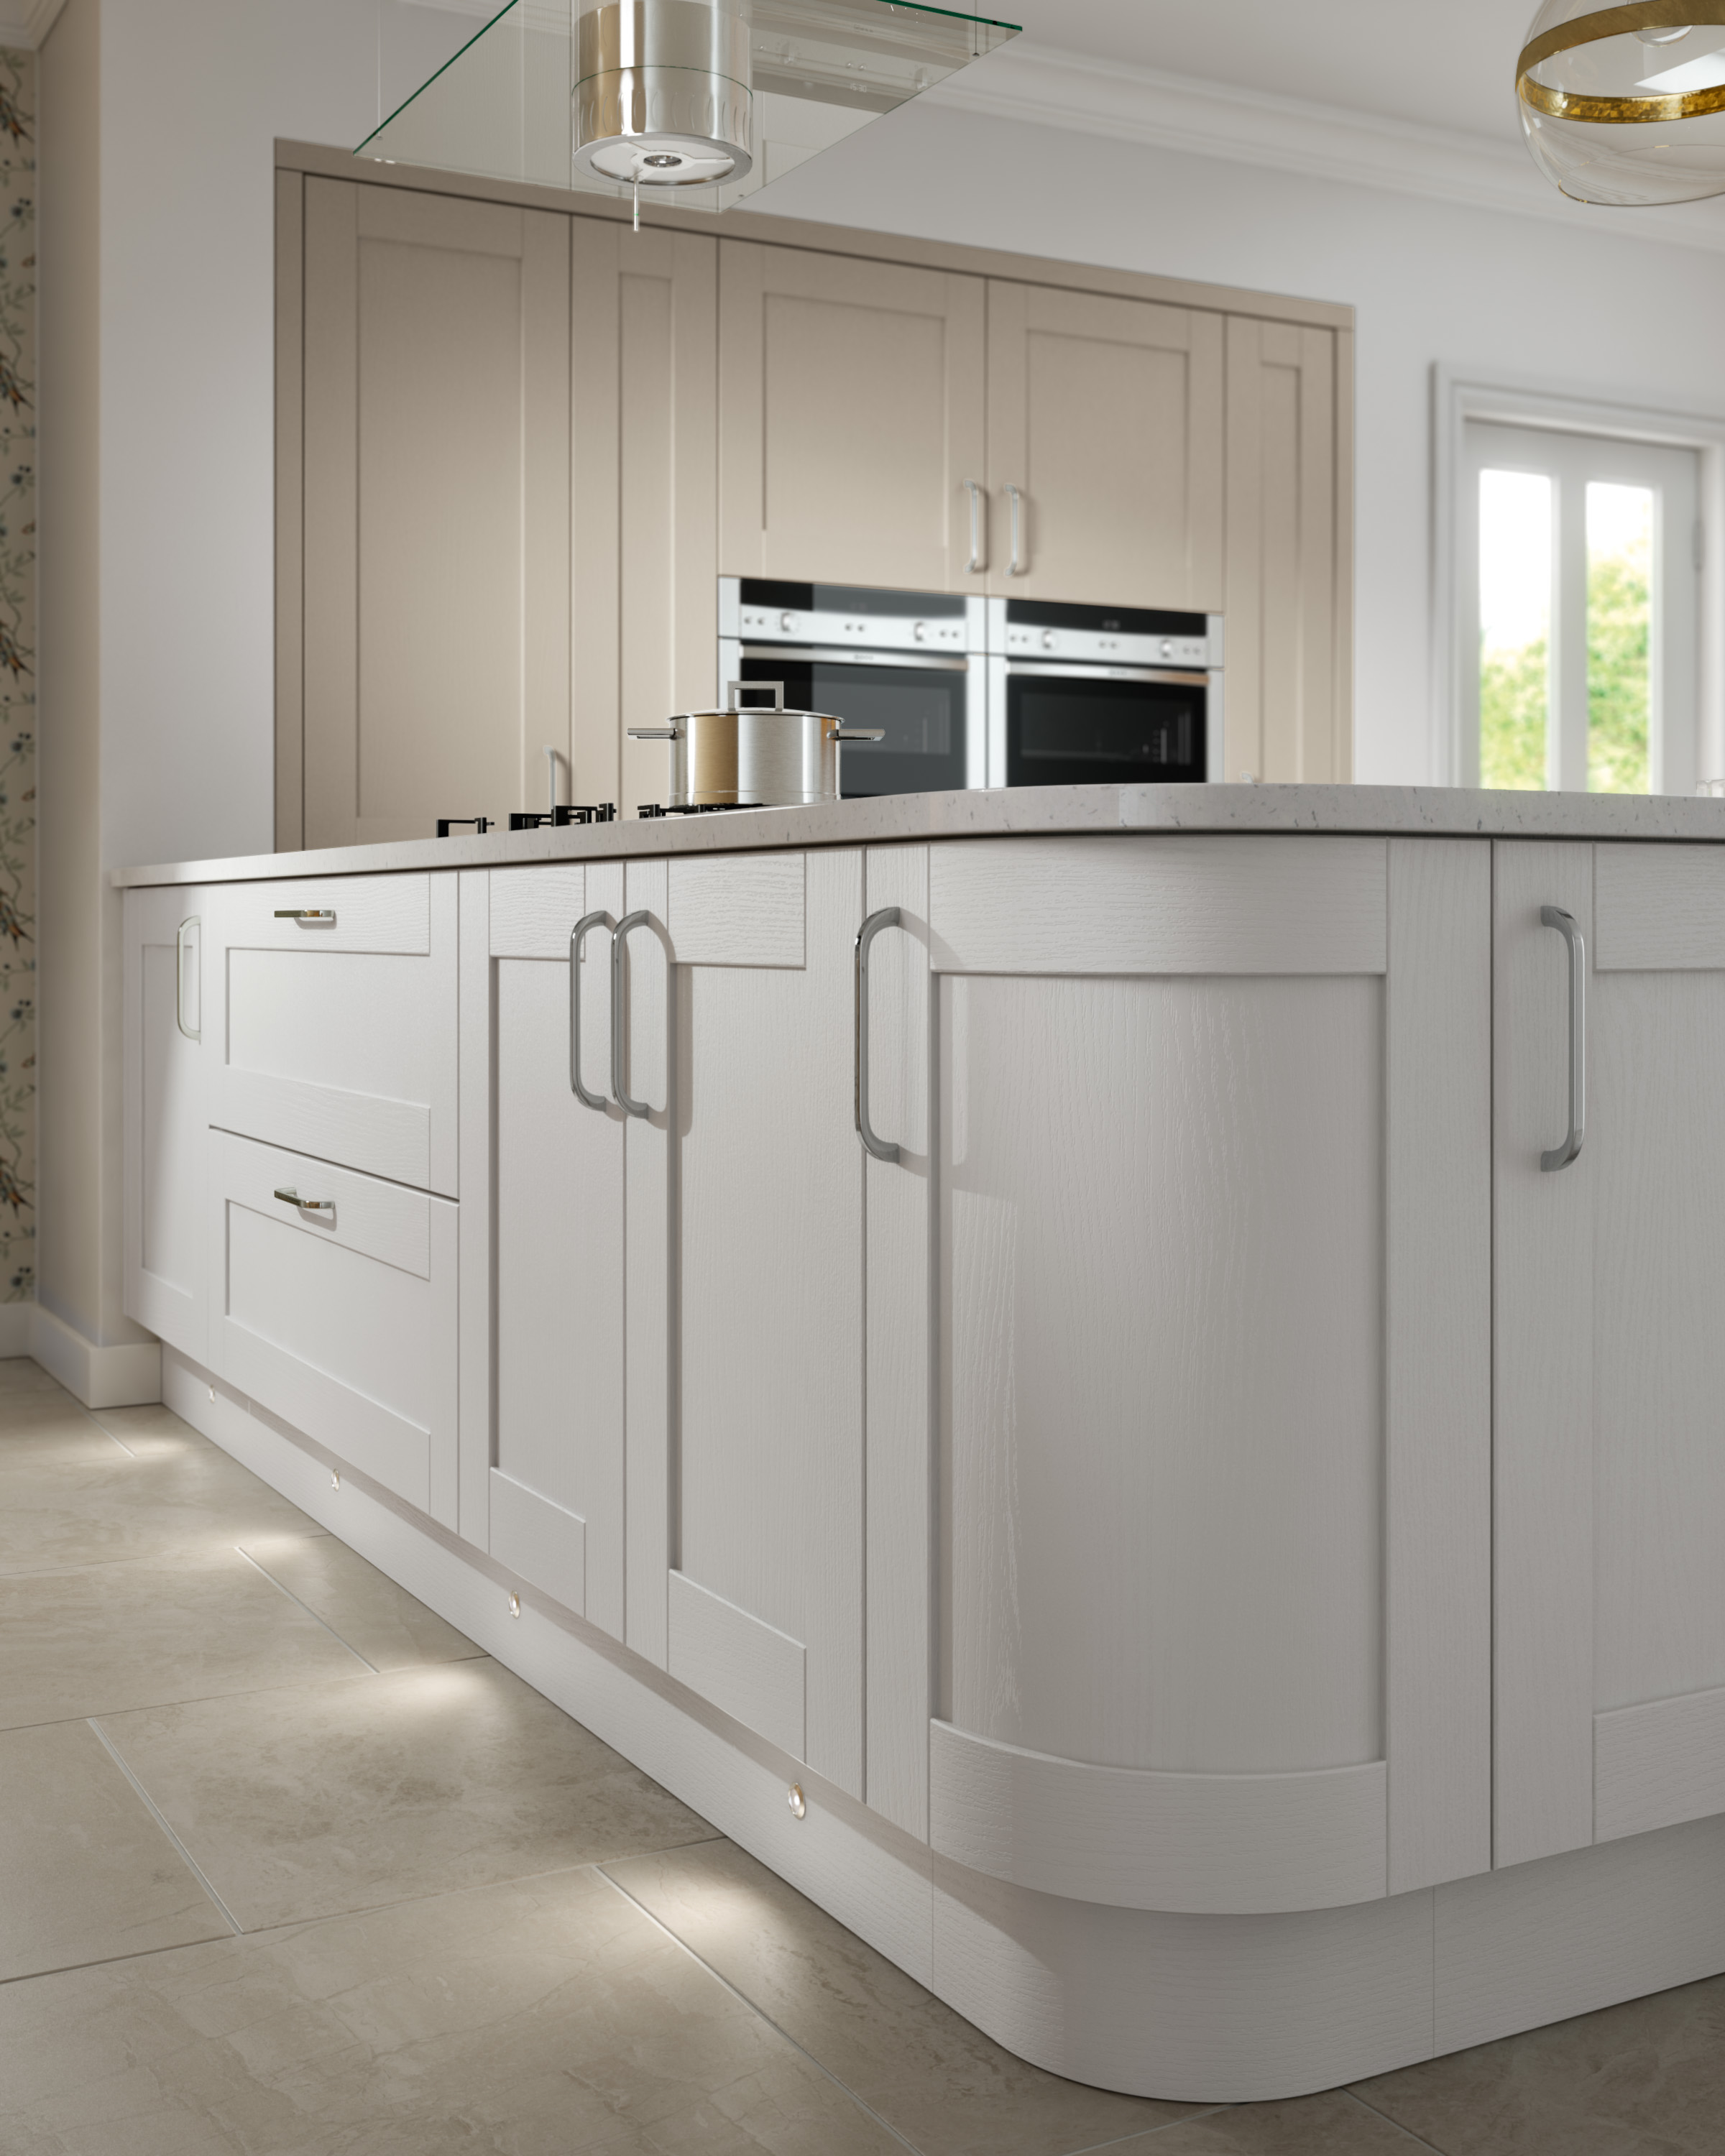 Cambridge Light Grey Kitchen Doors Doors And Handles UK - Light grey kitchen doors